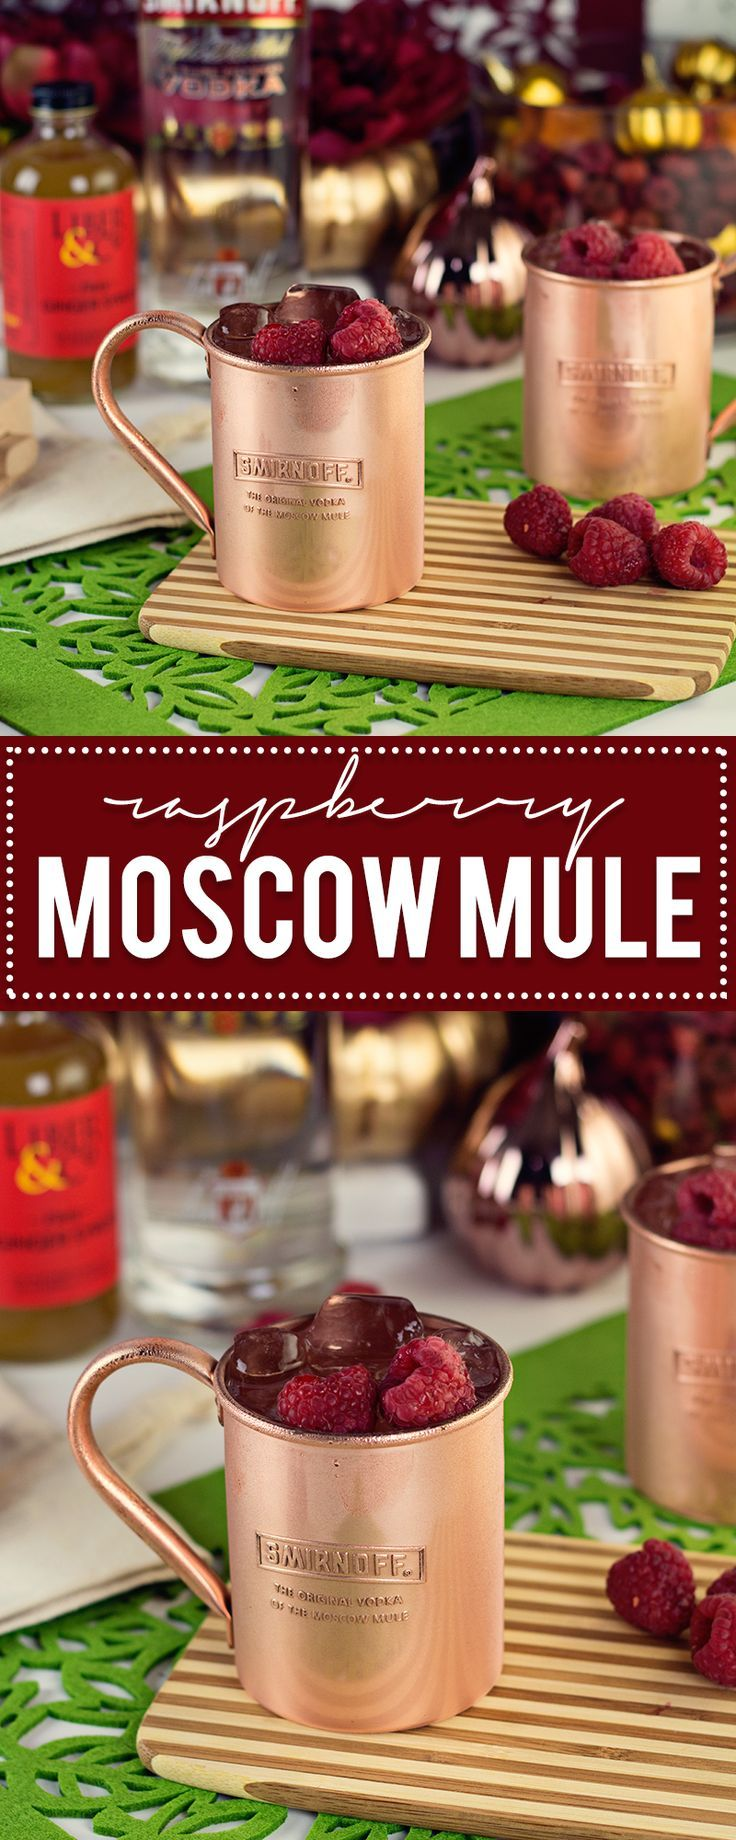 Ready to hop into Fall? Try out this Raspberry Moscow Mule, a creative spin on the ordinary Moscow Mule created by Smirnoff.